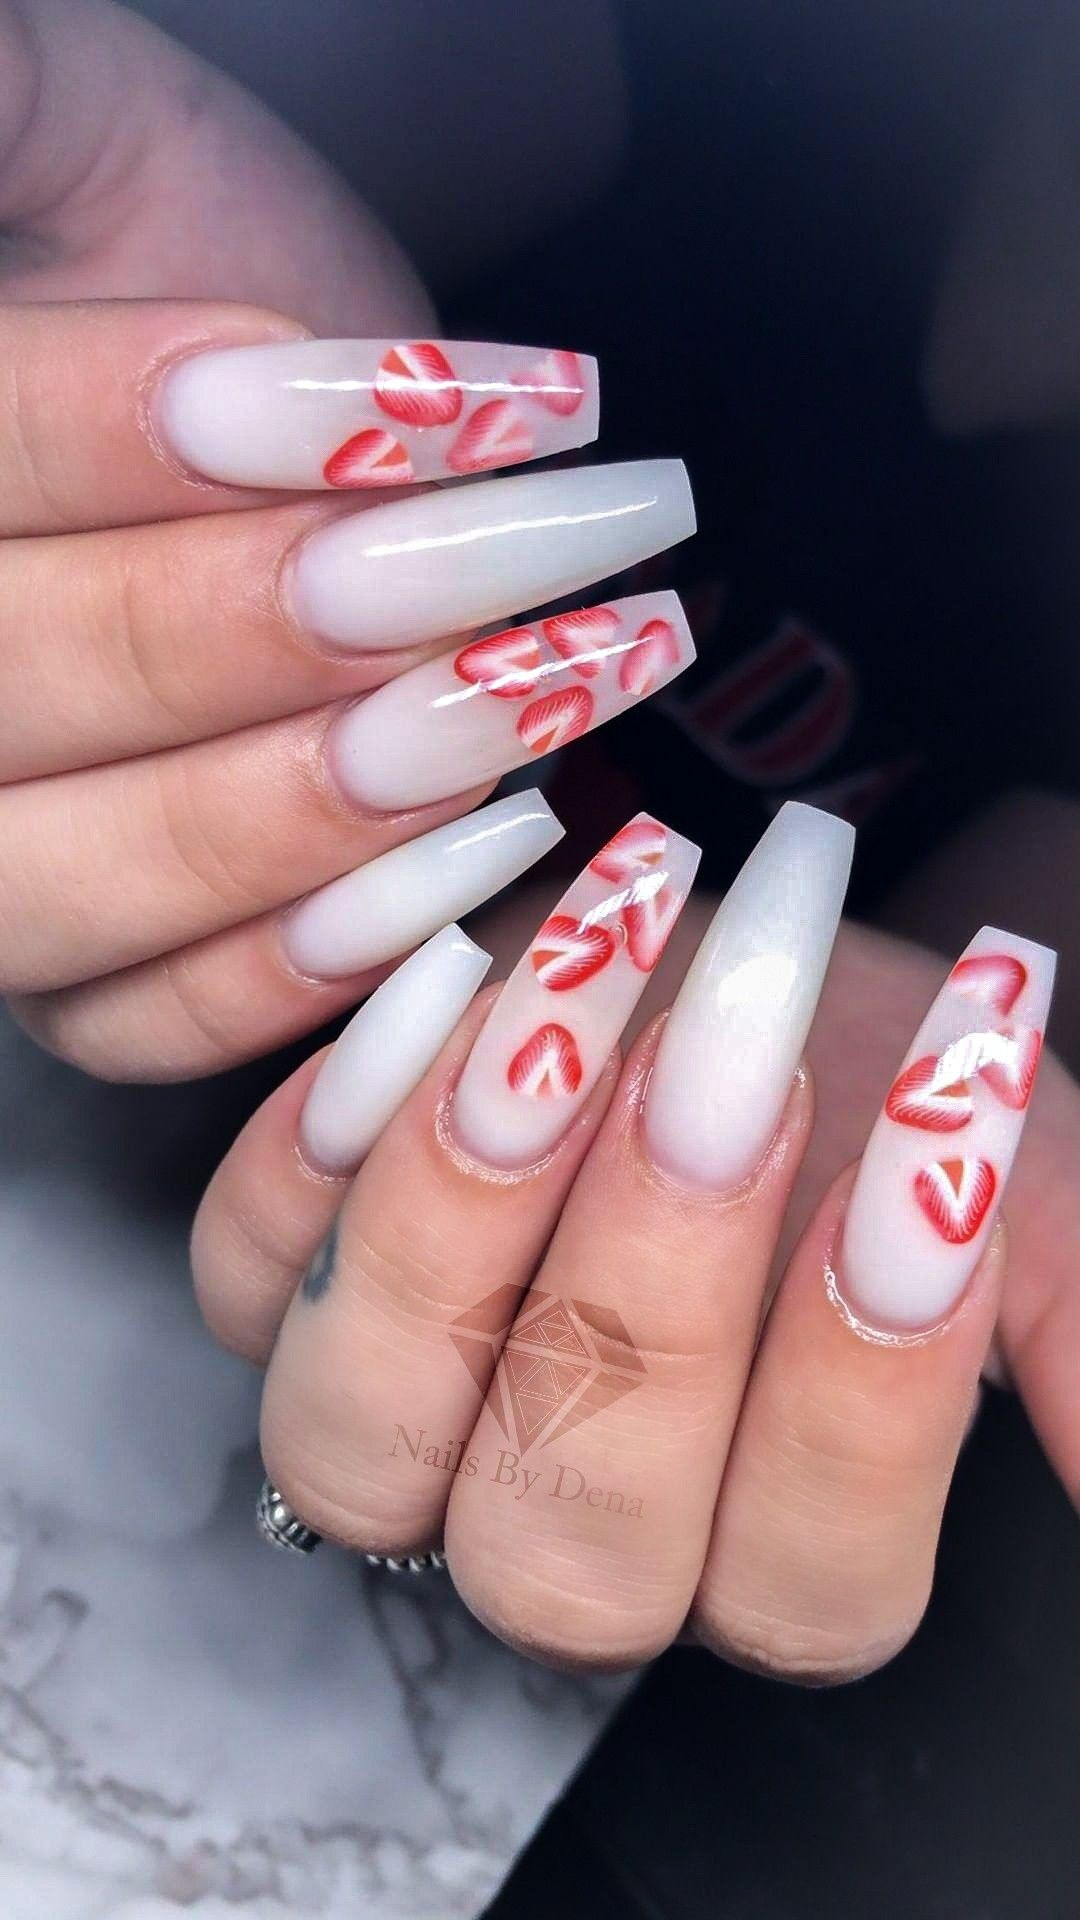 Milky Nails Strawberry Nails Fruit Nails Nails Design With Rhinestones White Acrylic Nails Coffin Nails Designs